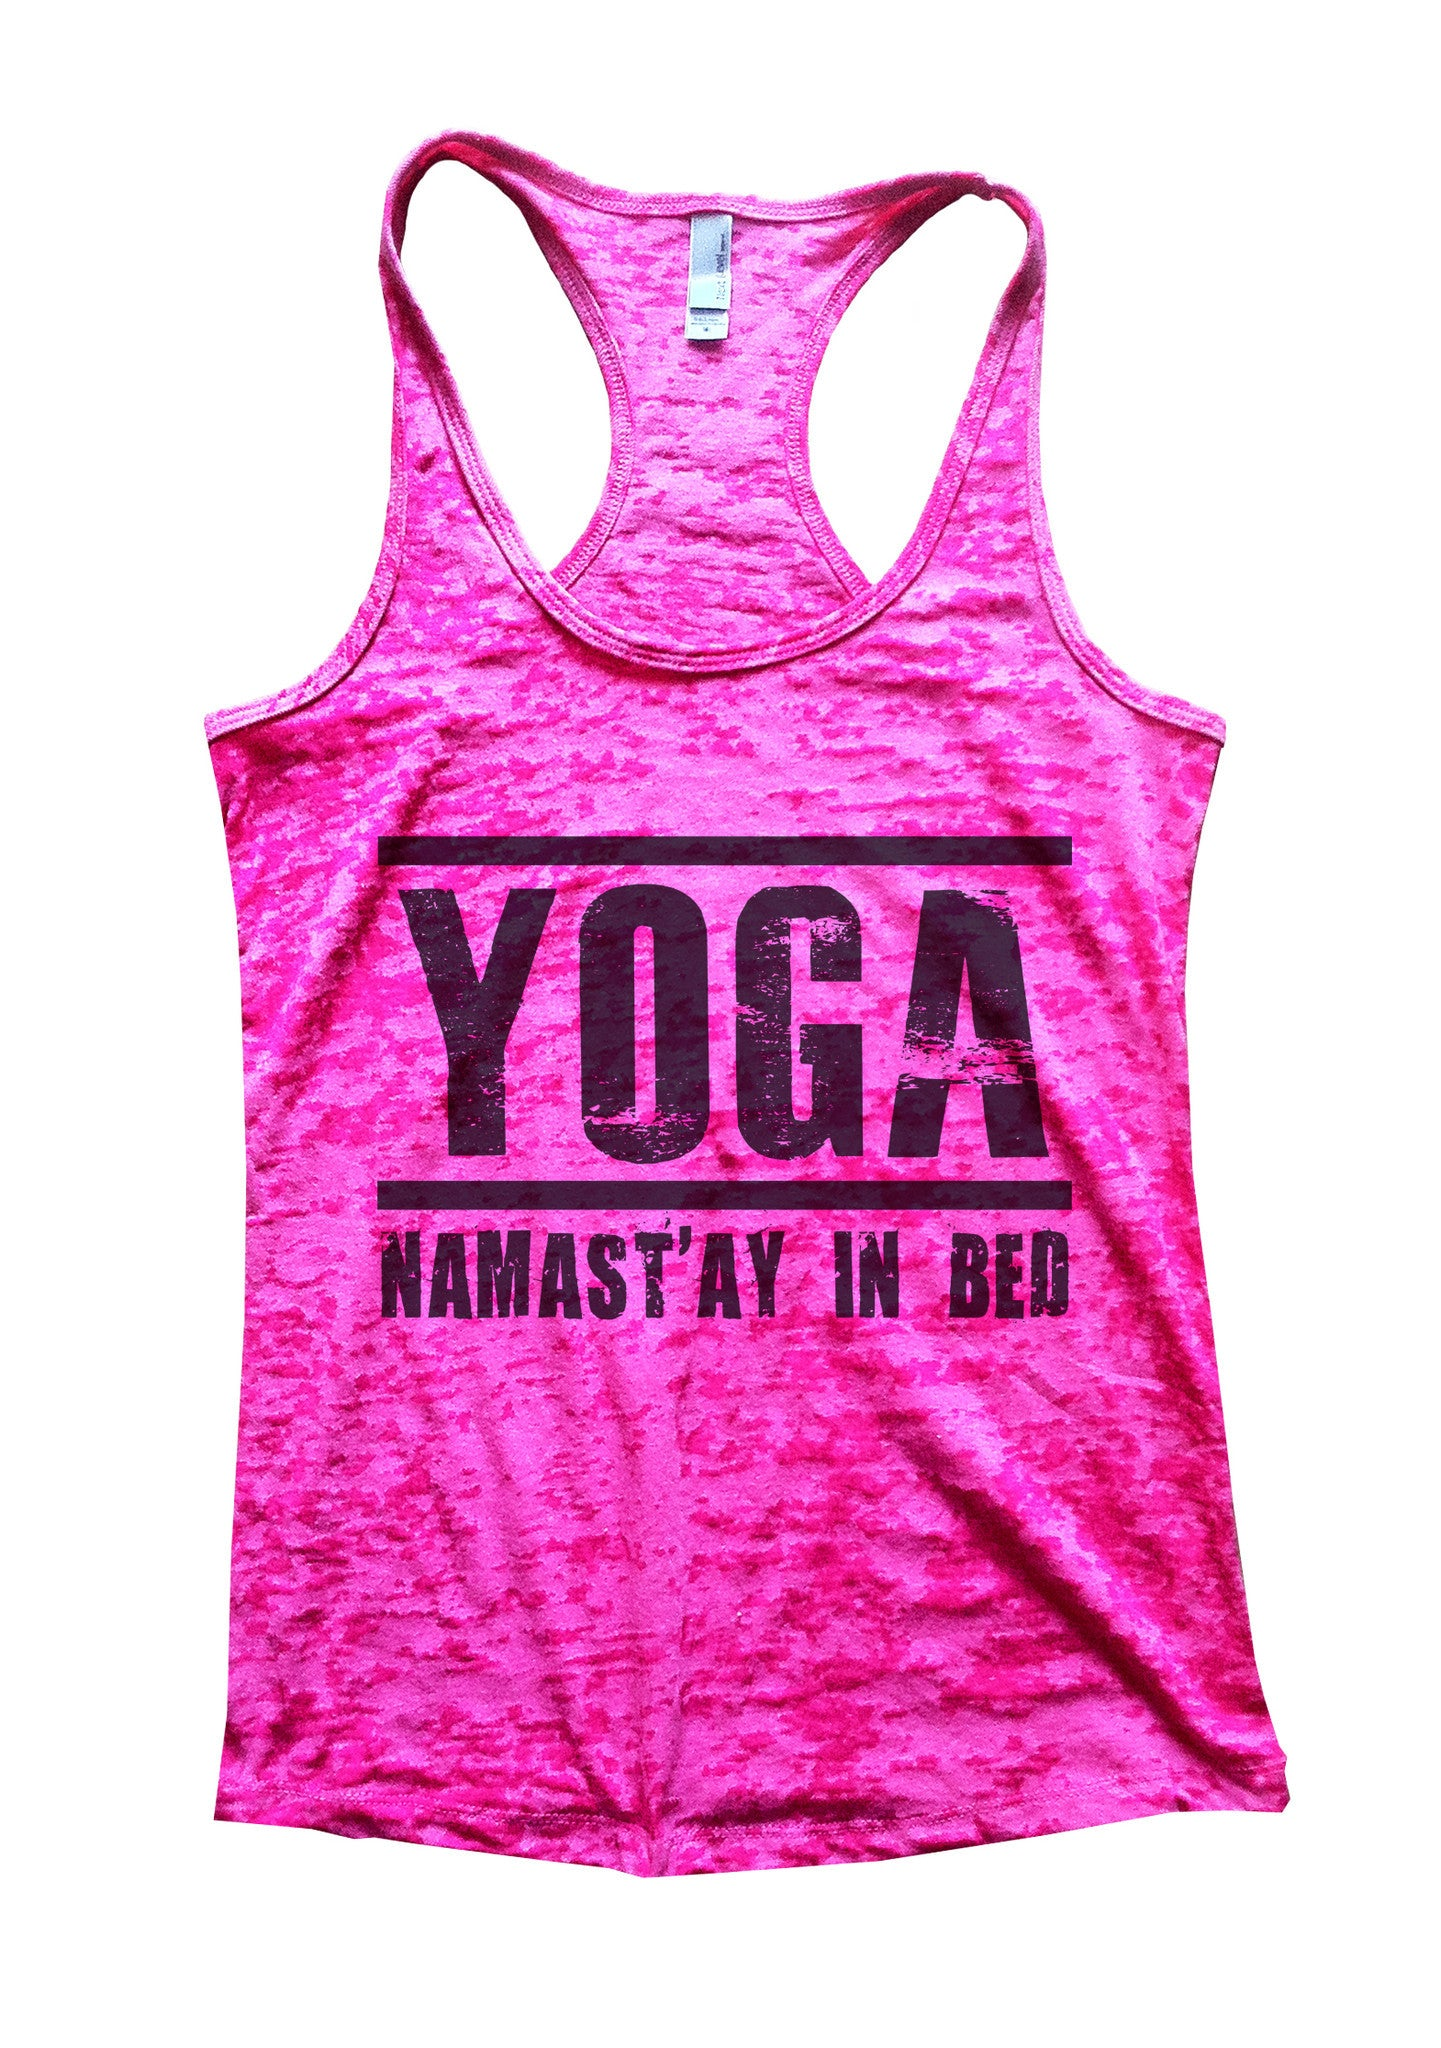 Yoga Namast'ay In Bed Burnout Tank Top By BurnoutTankTops.com - 649 - Funny Shirts Tank Tops Burnouts and Triblends  - 4